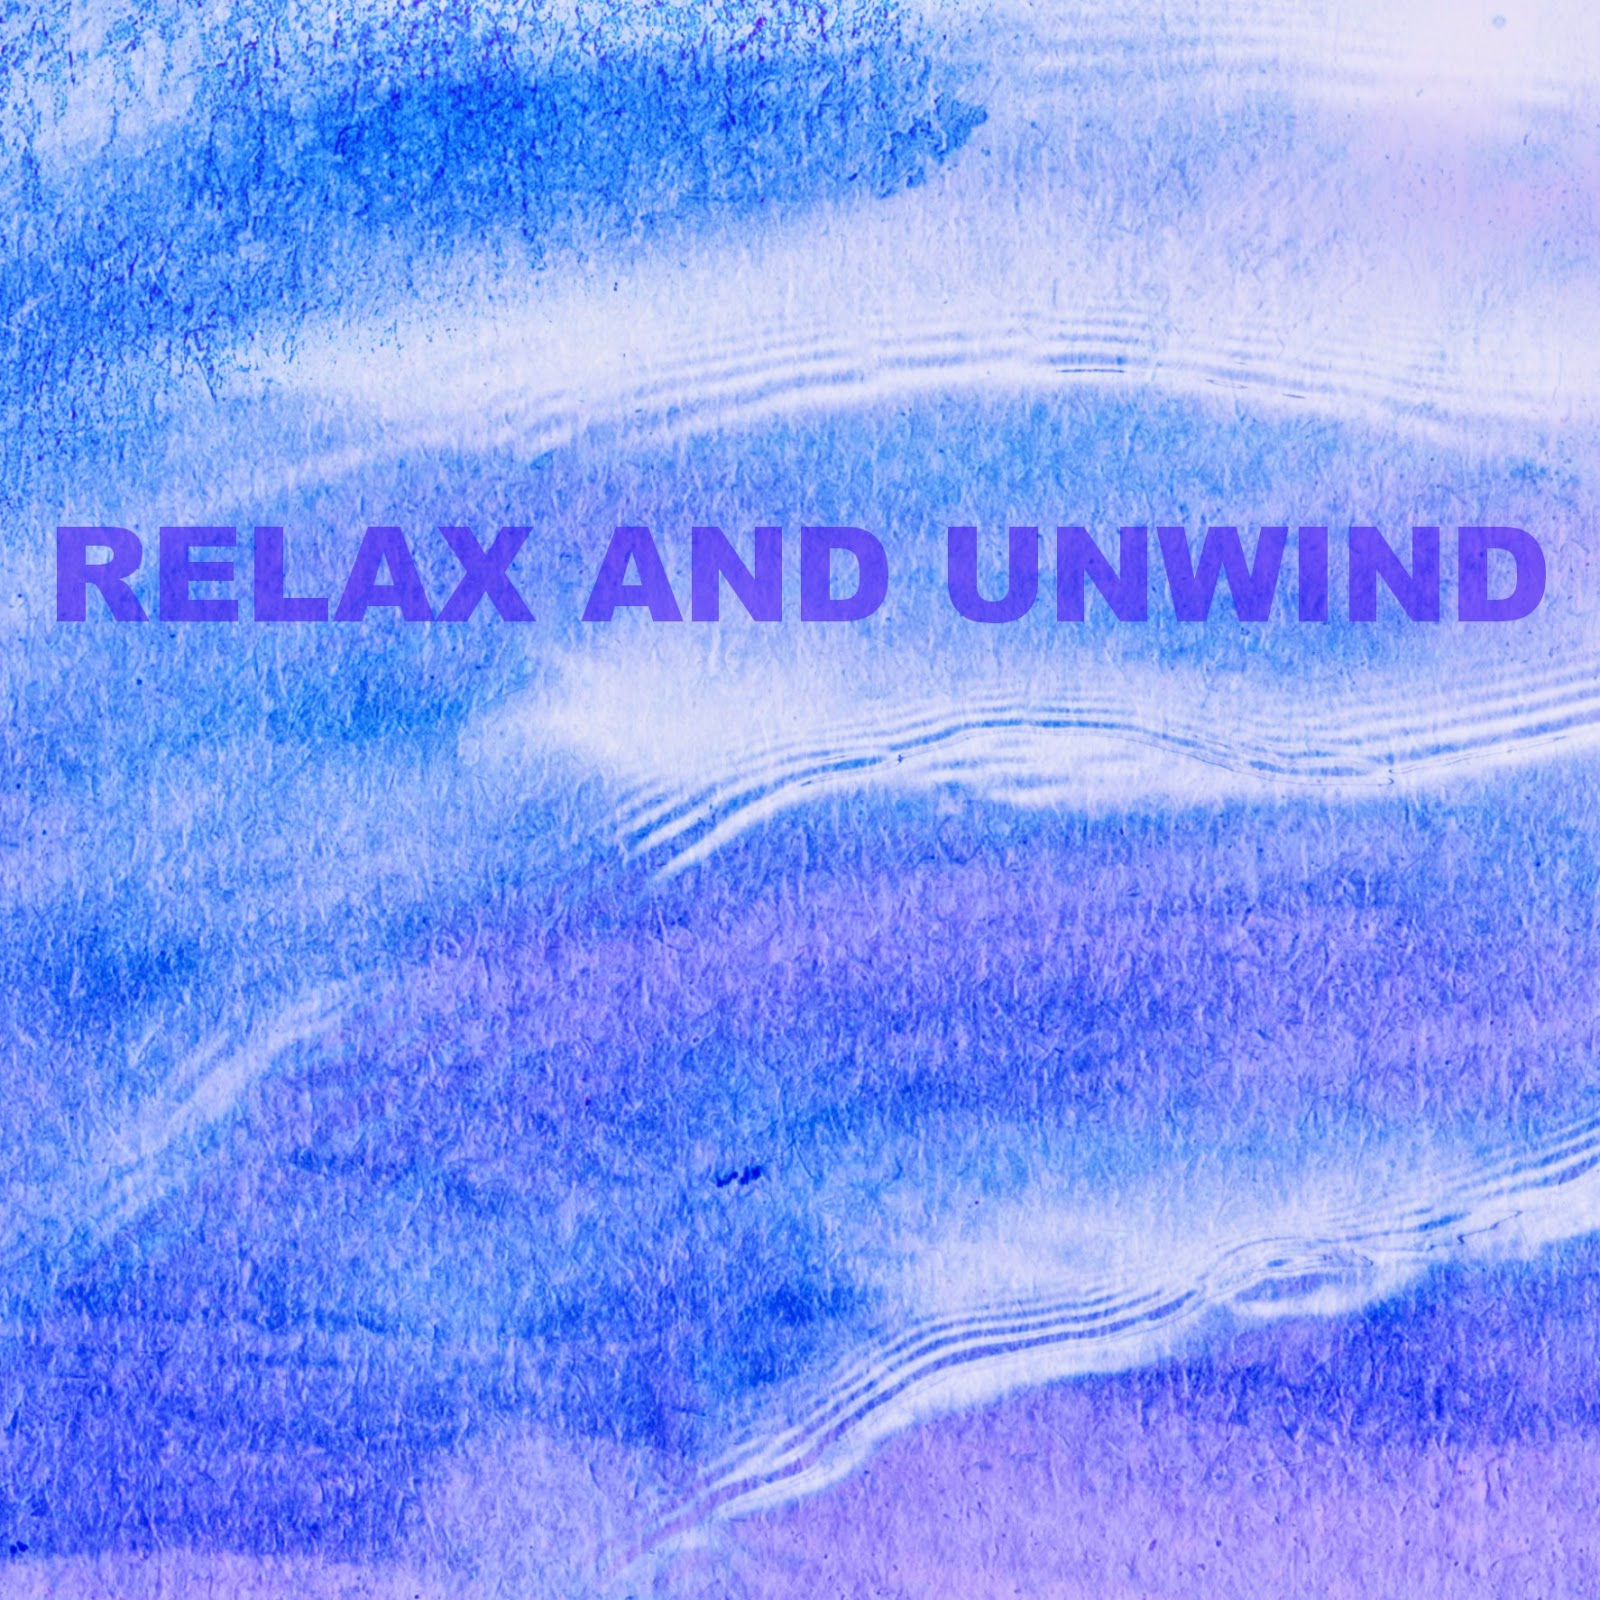 relax and unwind - photo #20